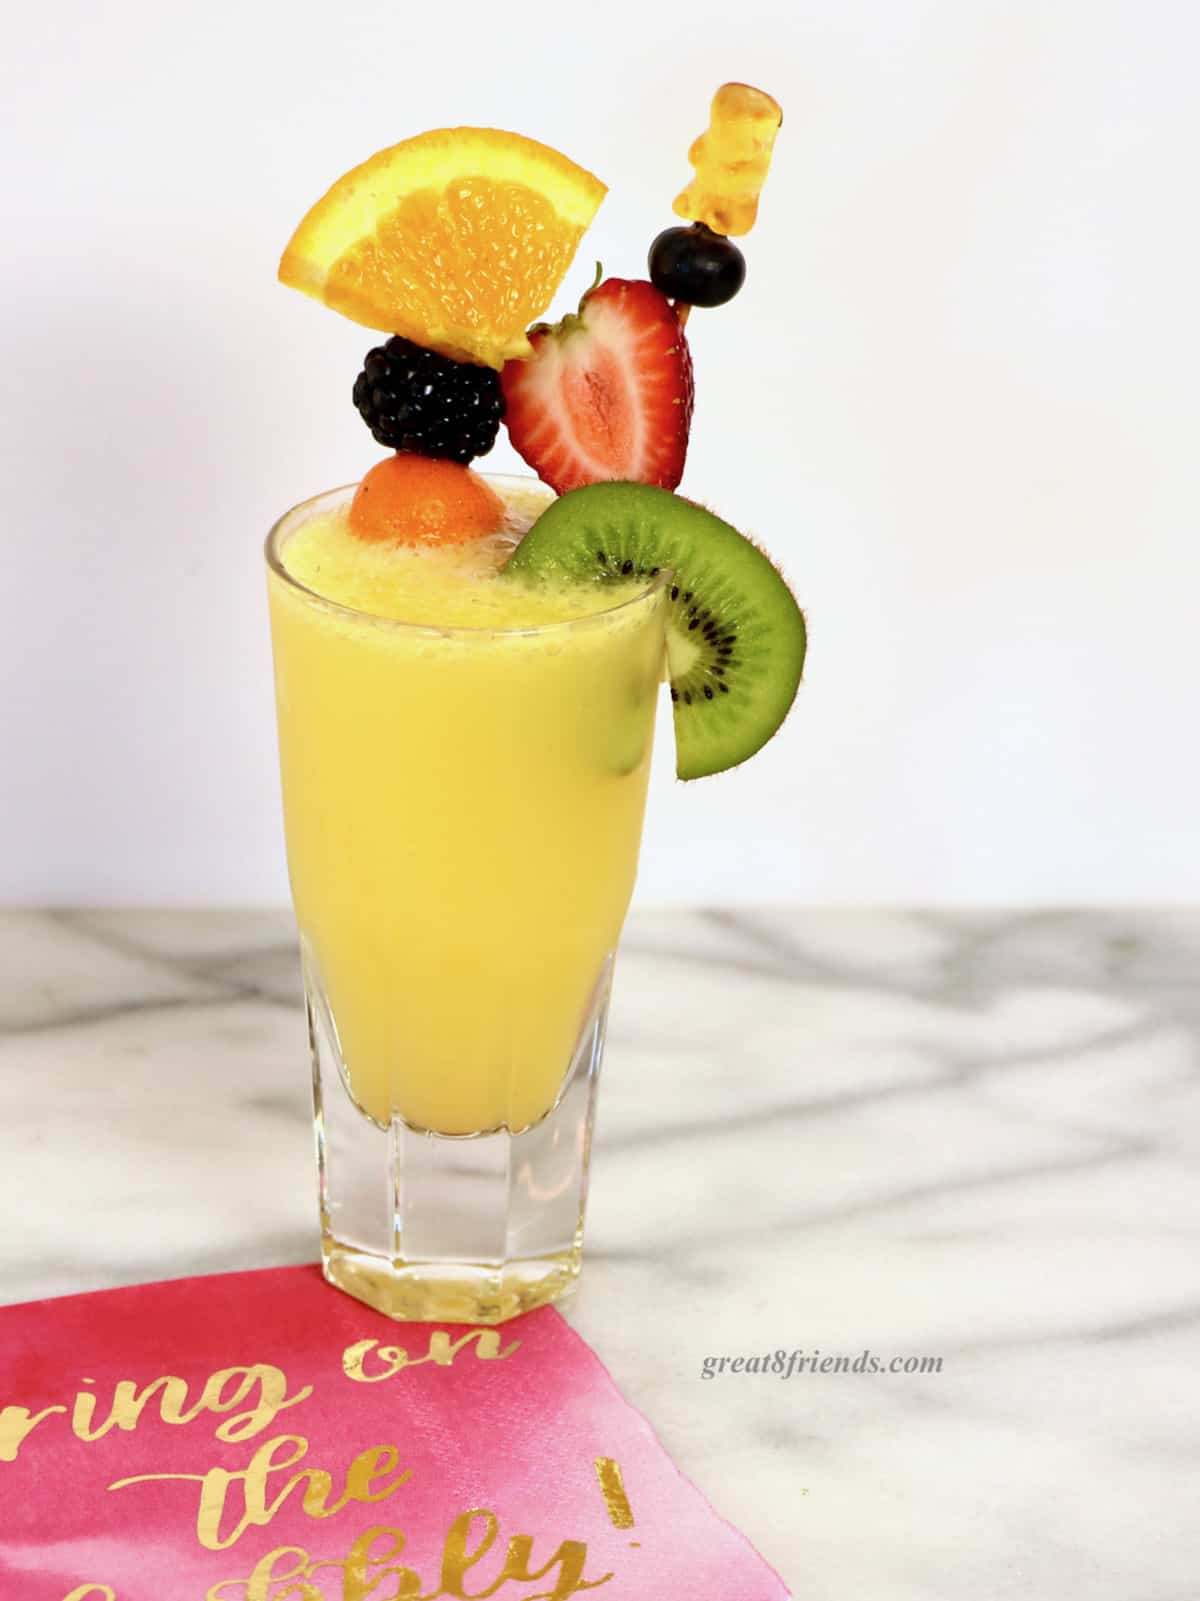 A mimosa in a juice glass garnished with two skewers of assorted fruit on a pink napkin.